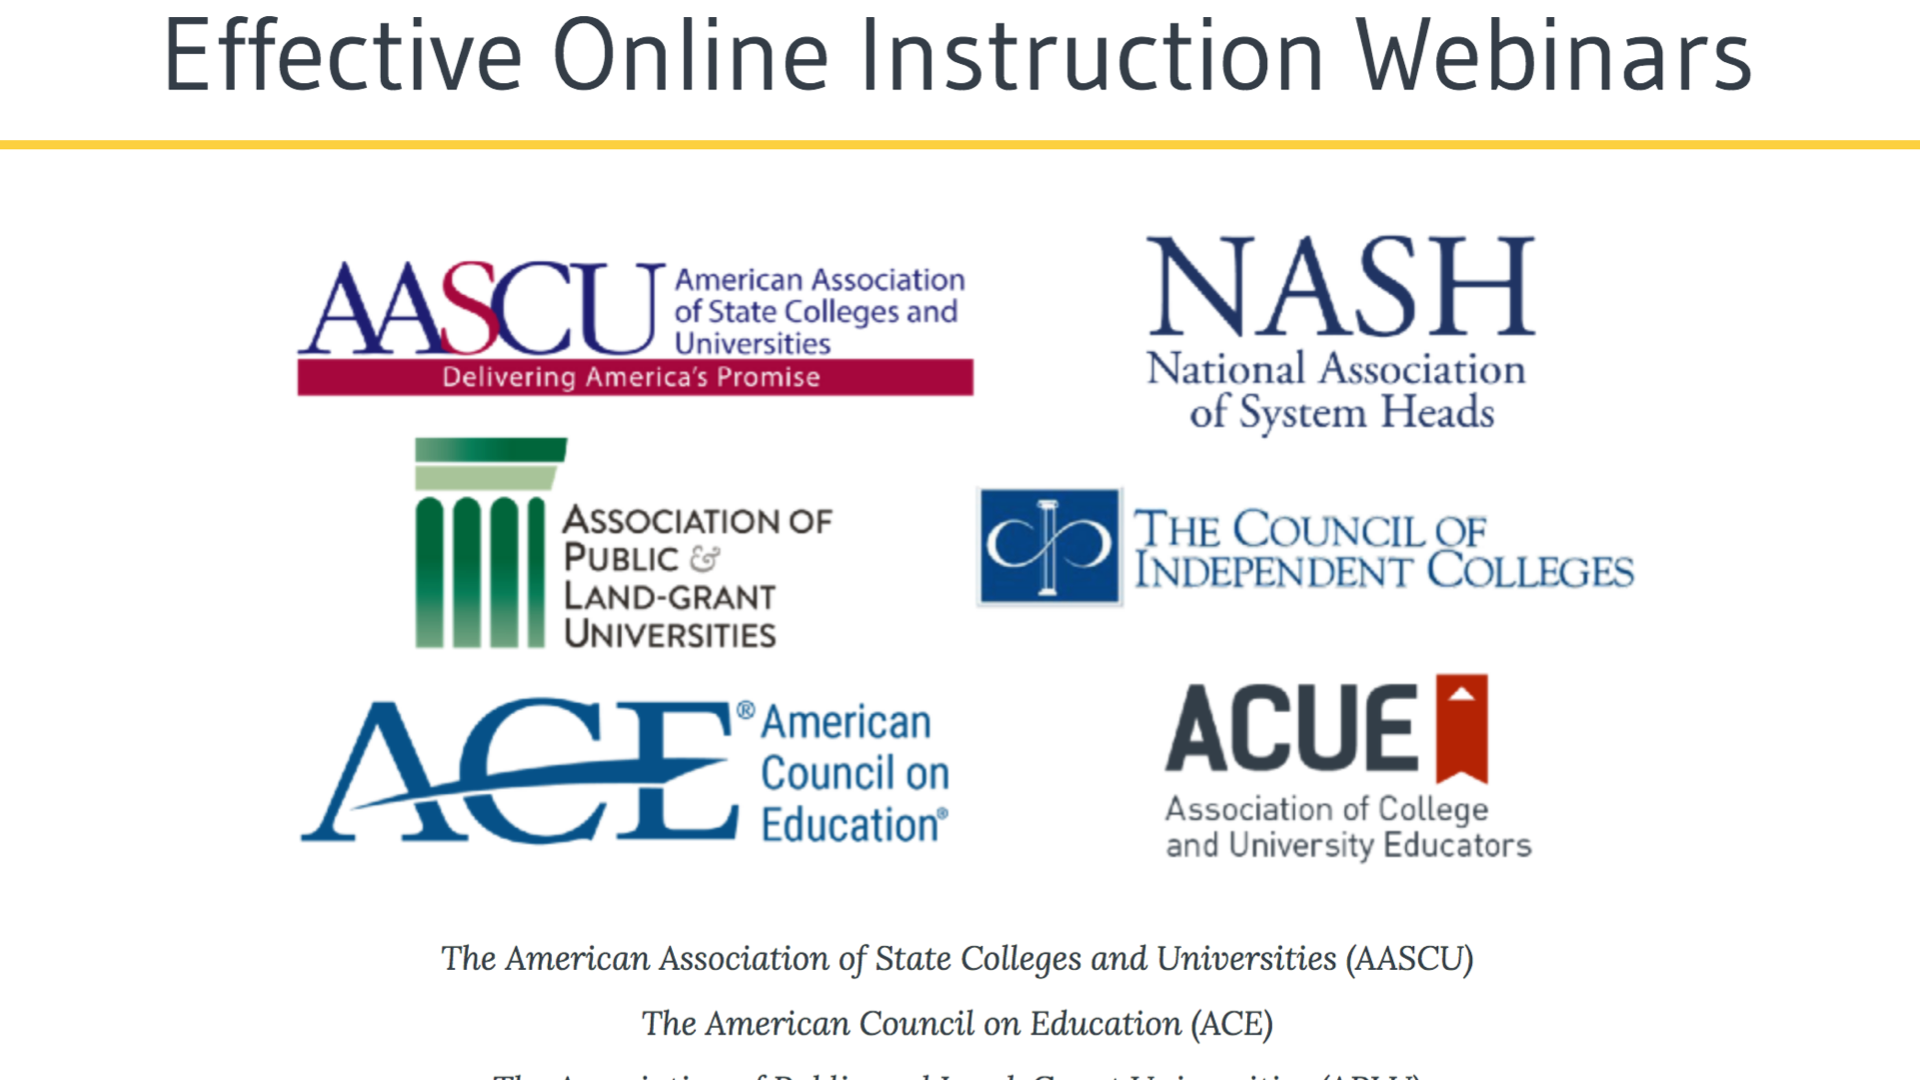 ACUE webinar homepage screenshot